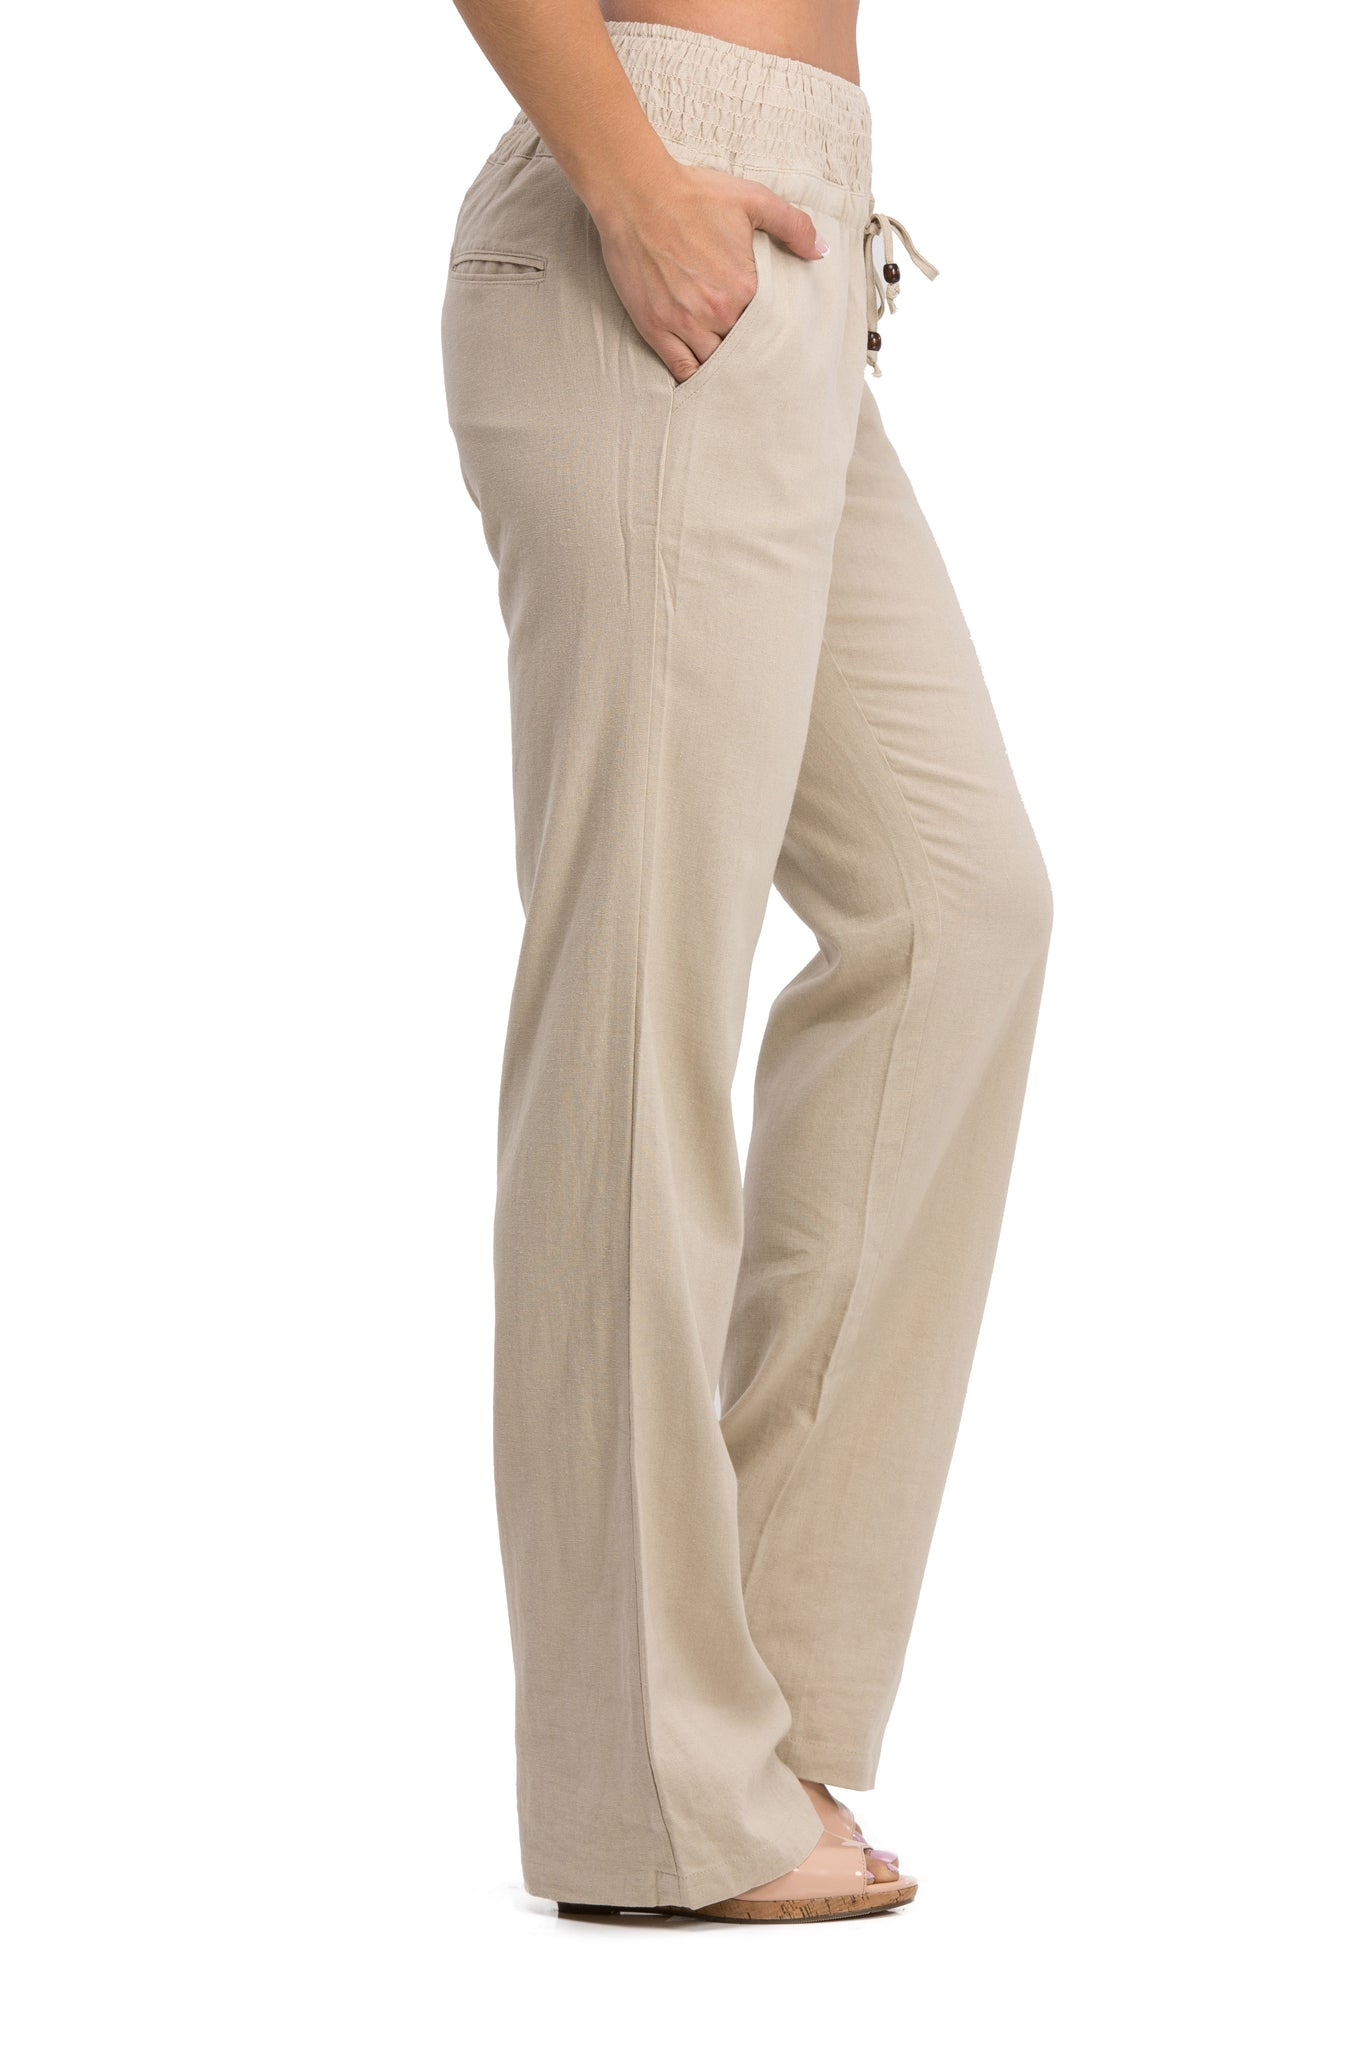 Comfy Drawstring Linen Pants Long with Smocked Band Waist (Natural) - Poplooks